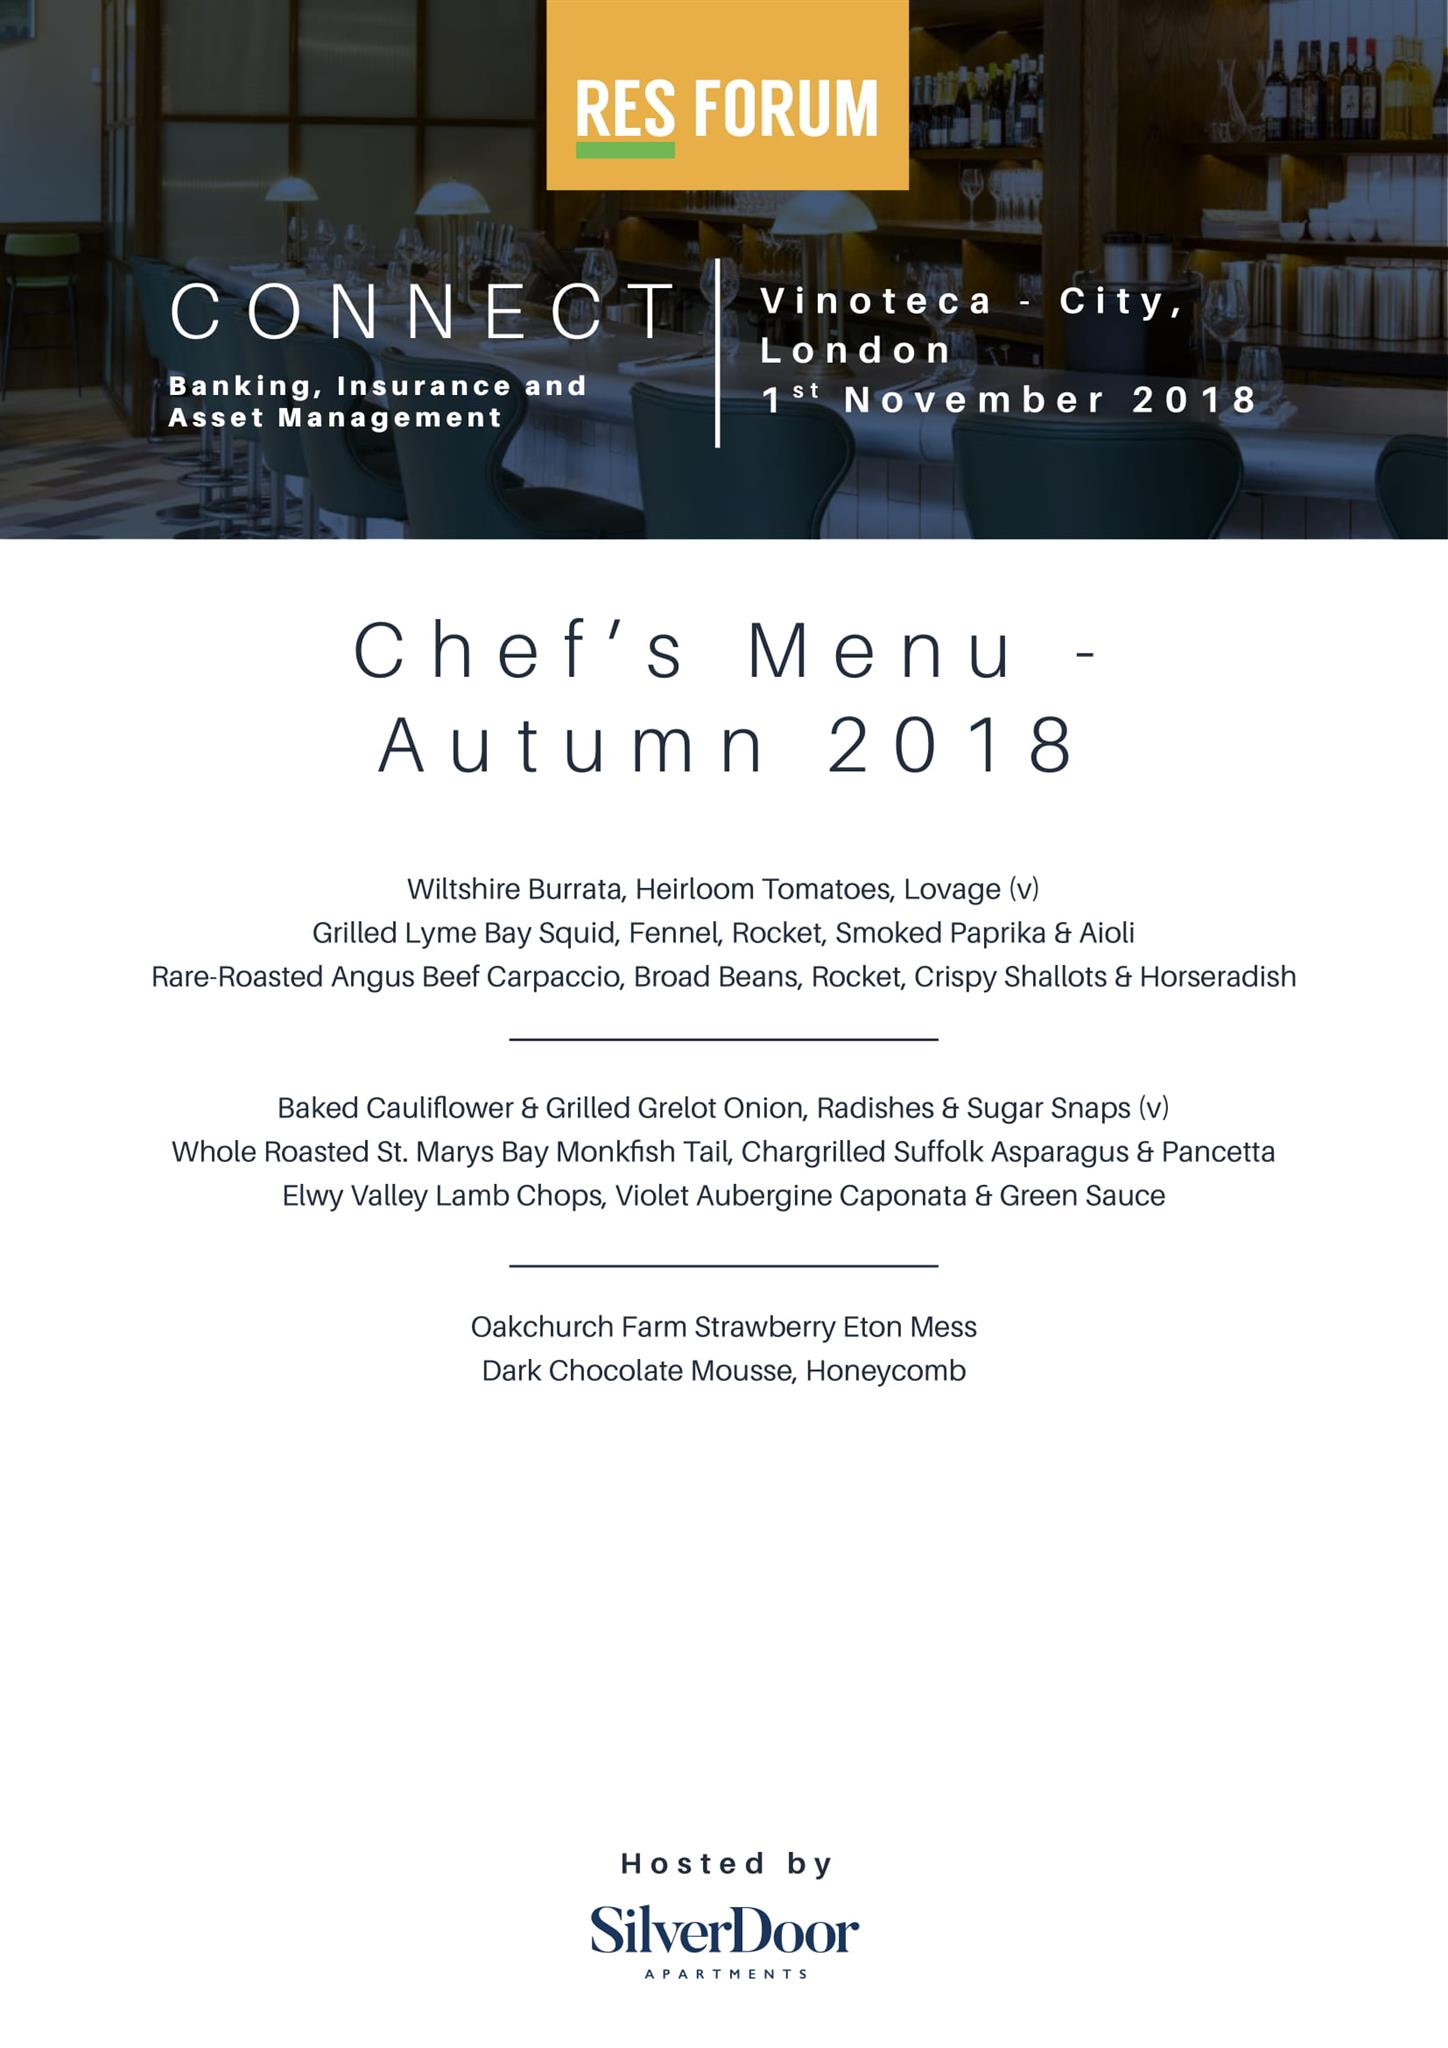 london-event-menu